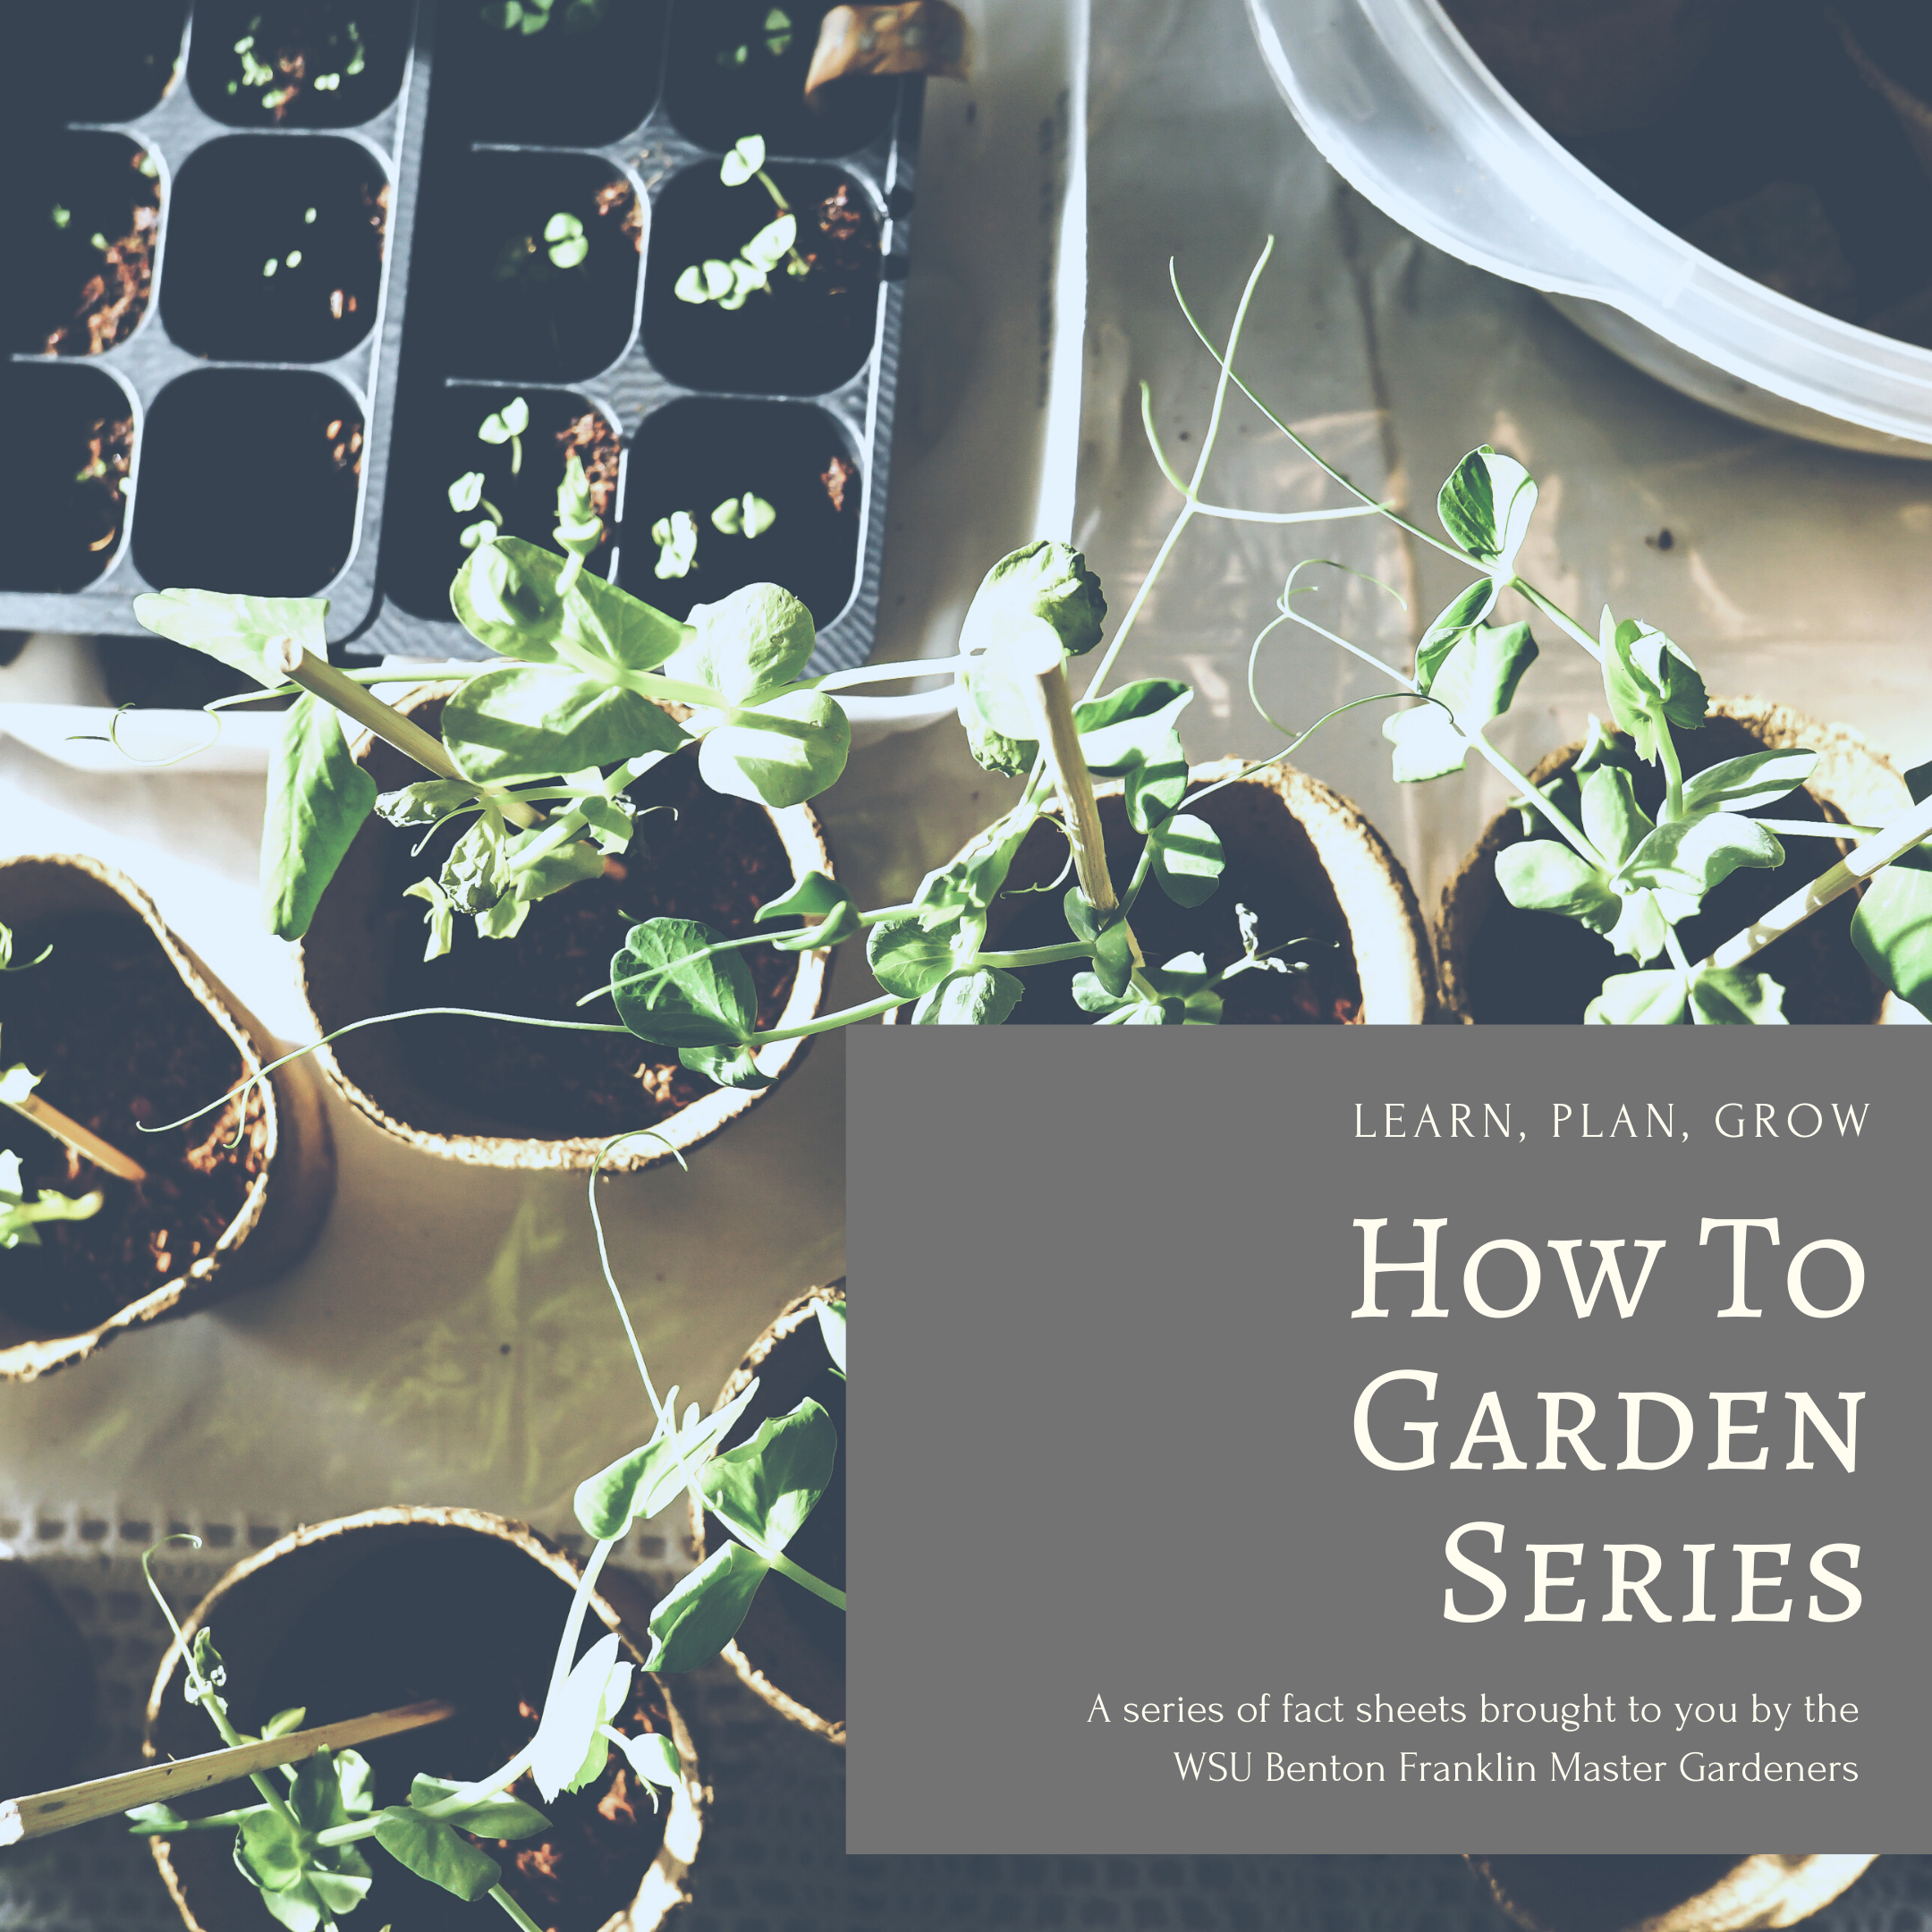 Picture of garden pots with the words Learn, Plan, Grow. How to Garden Series. A series of fact sheets brought to you by WSU Benton Franklin Master Gardeners.